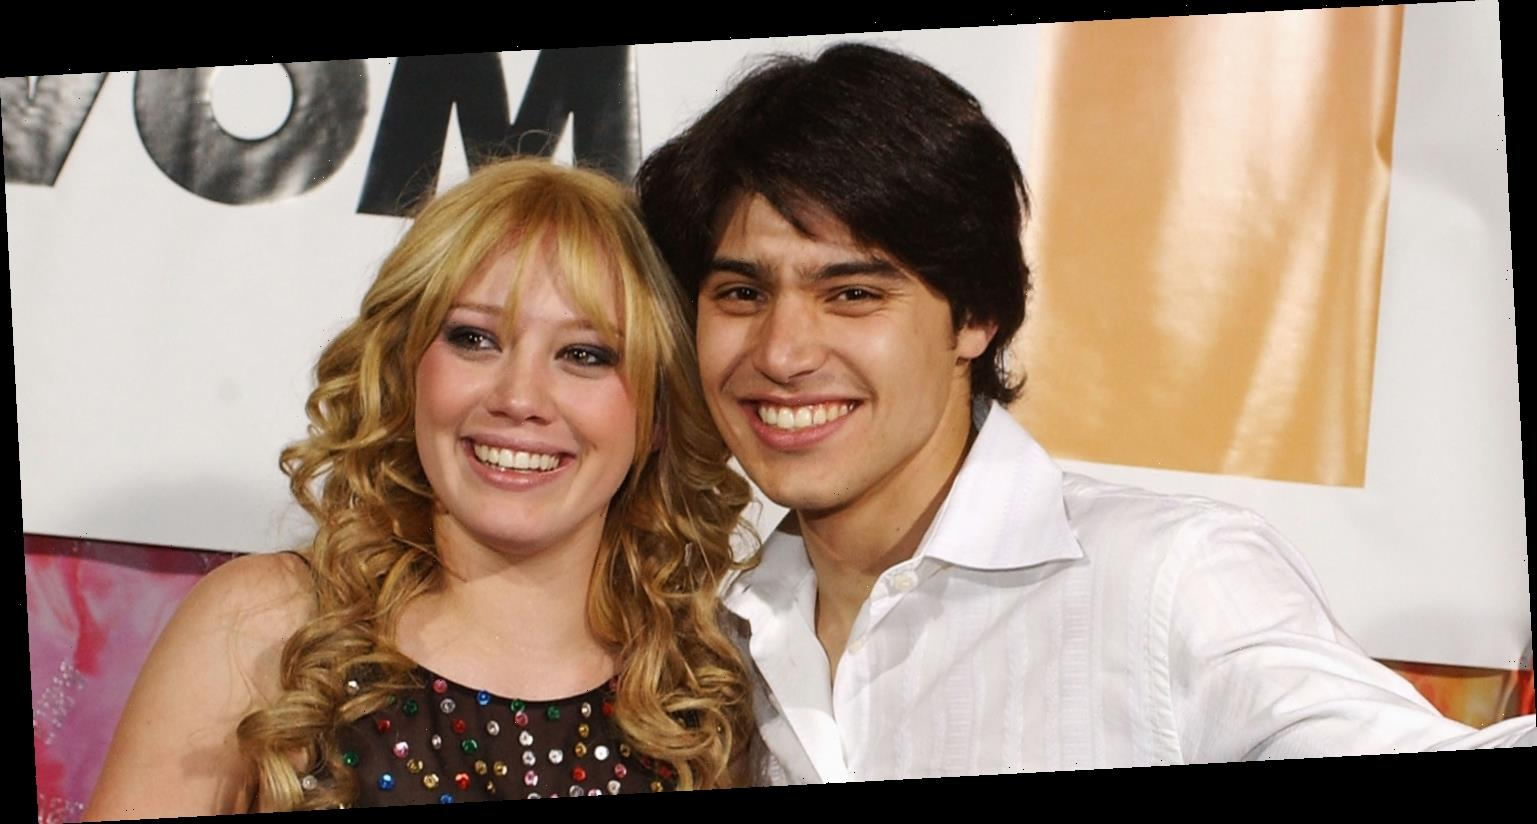 Hilary Duff Reveals If She Wants Paolo to Appear on 'Lizzie McGuire' Reboot